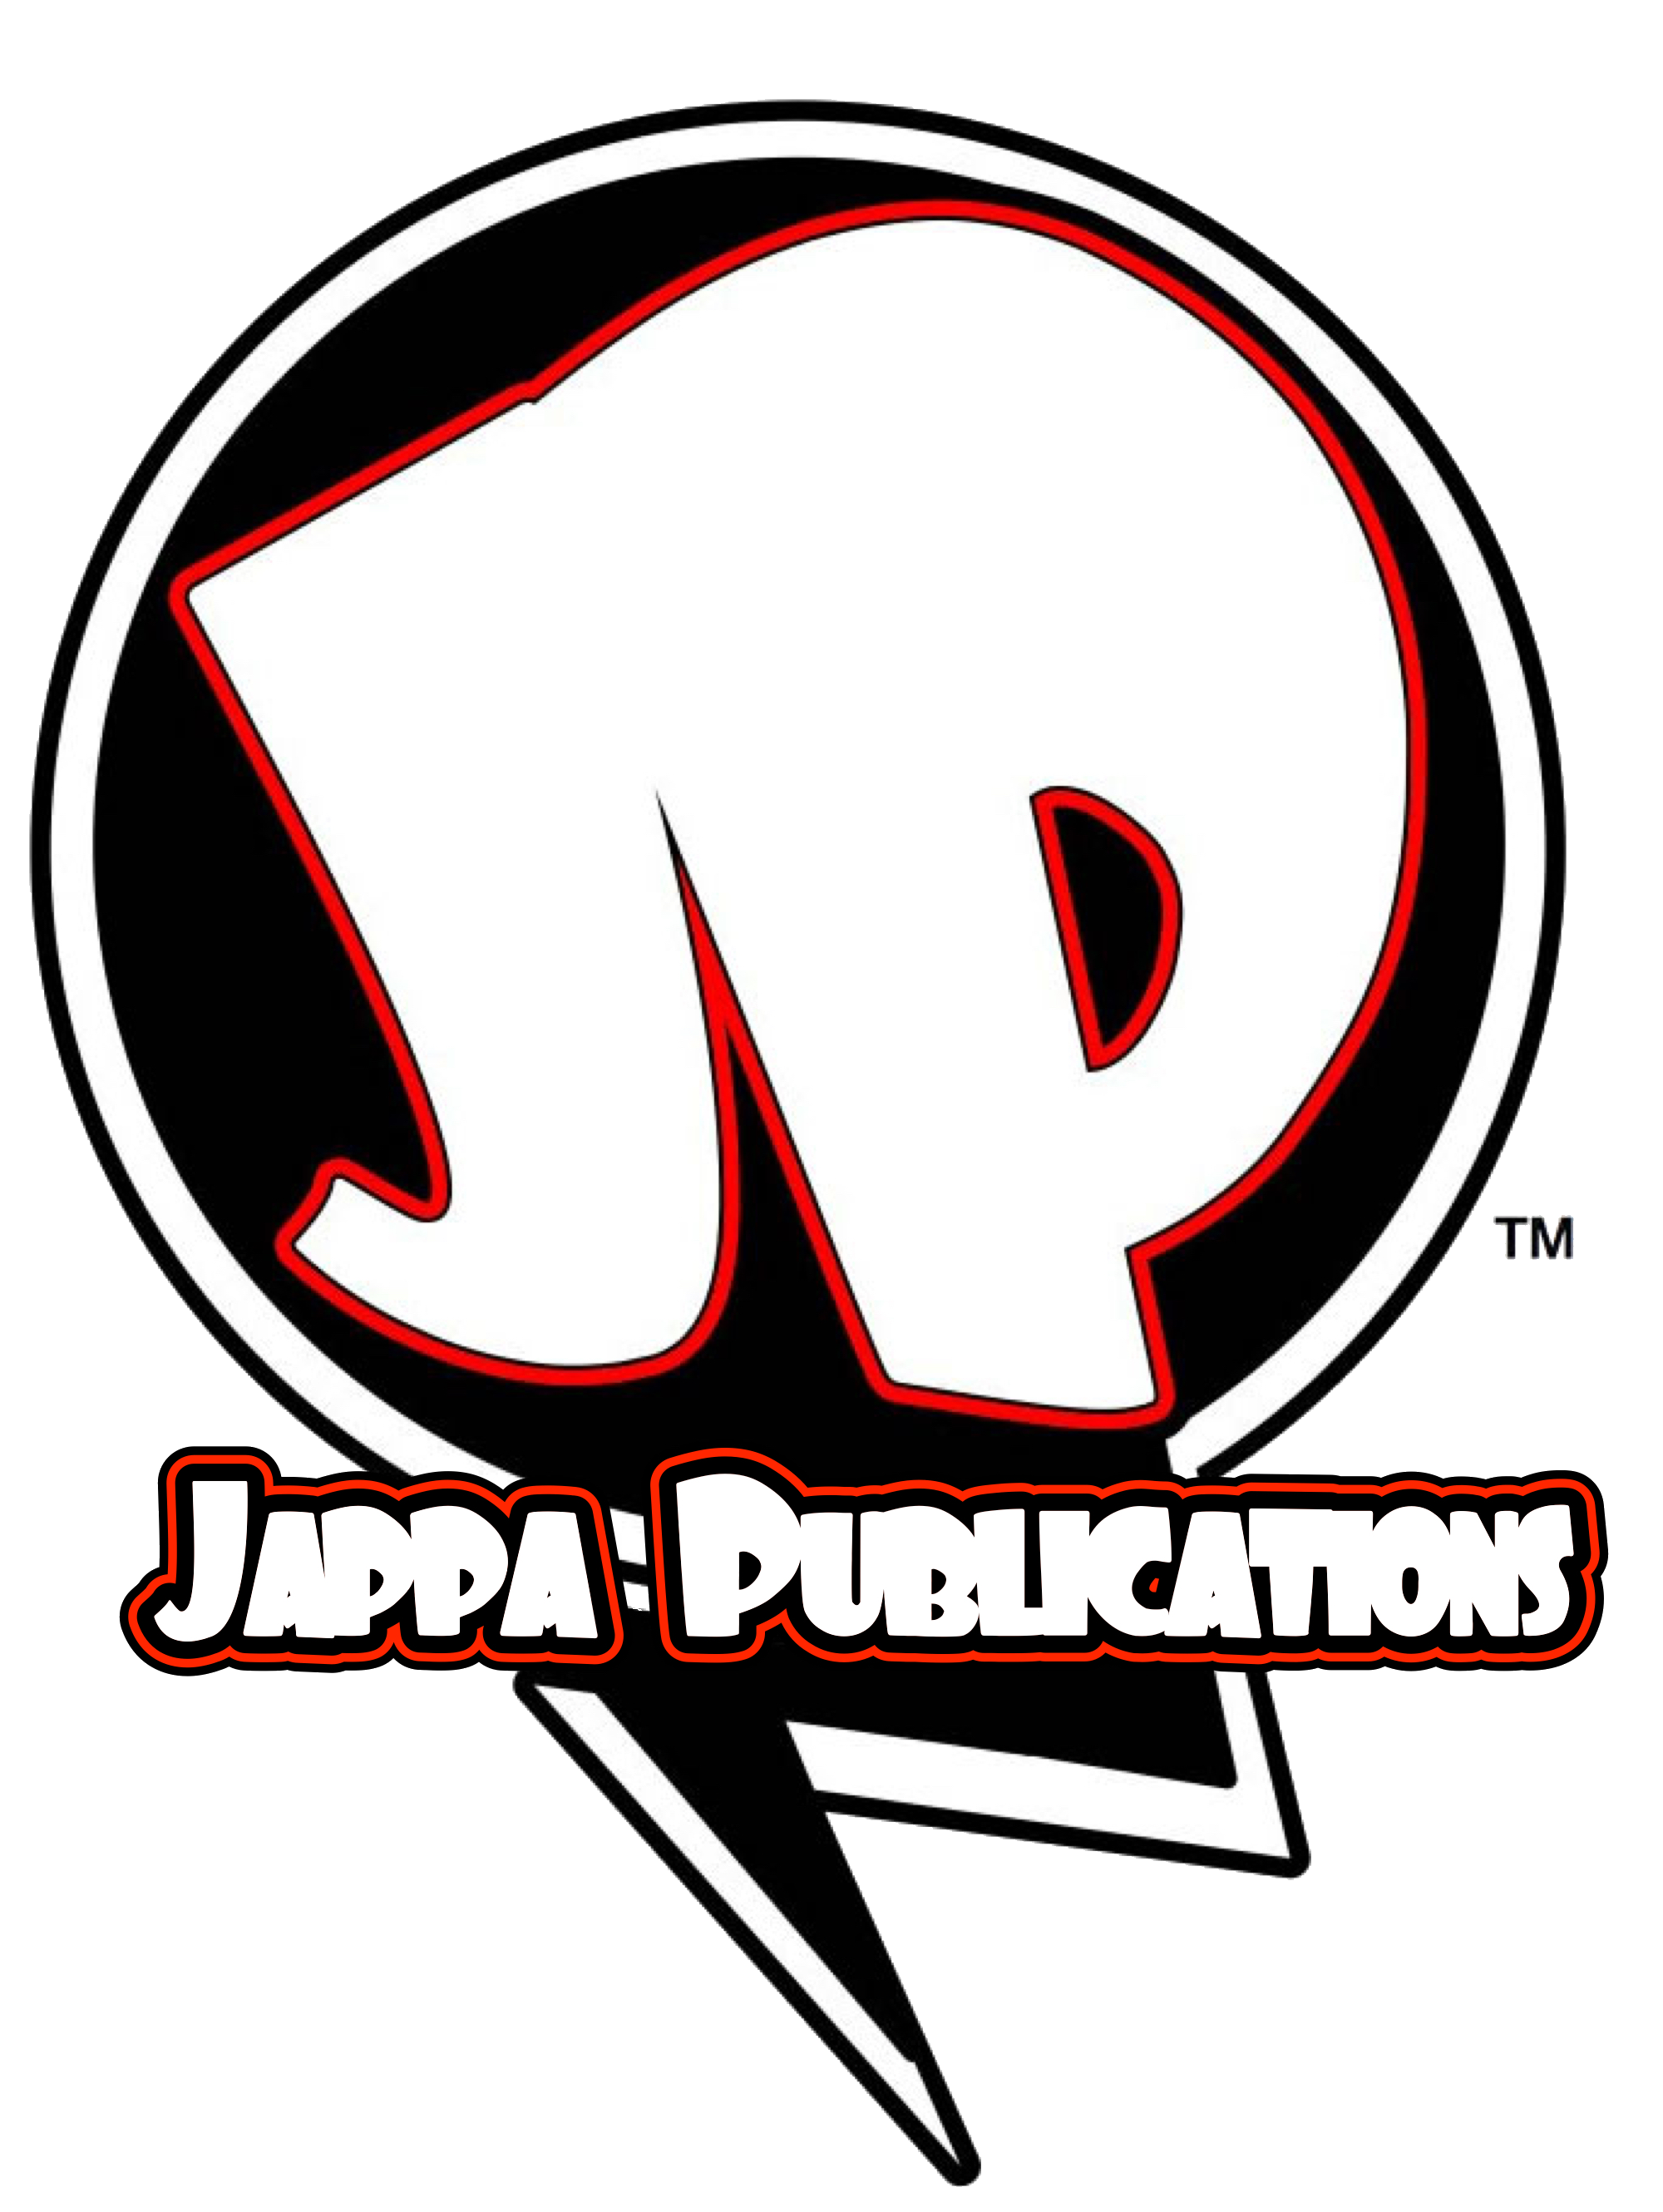 Welcome to Jappa Publications